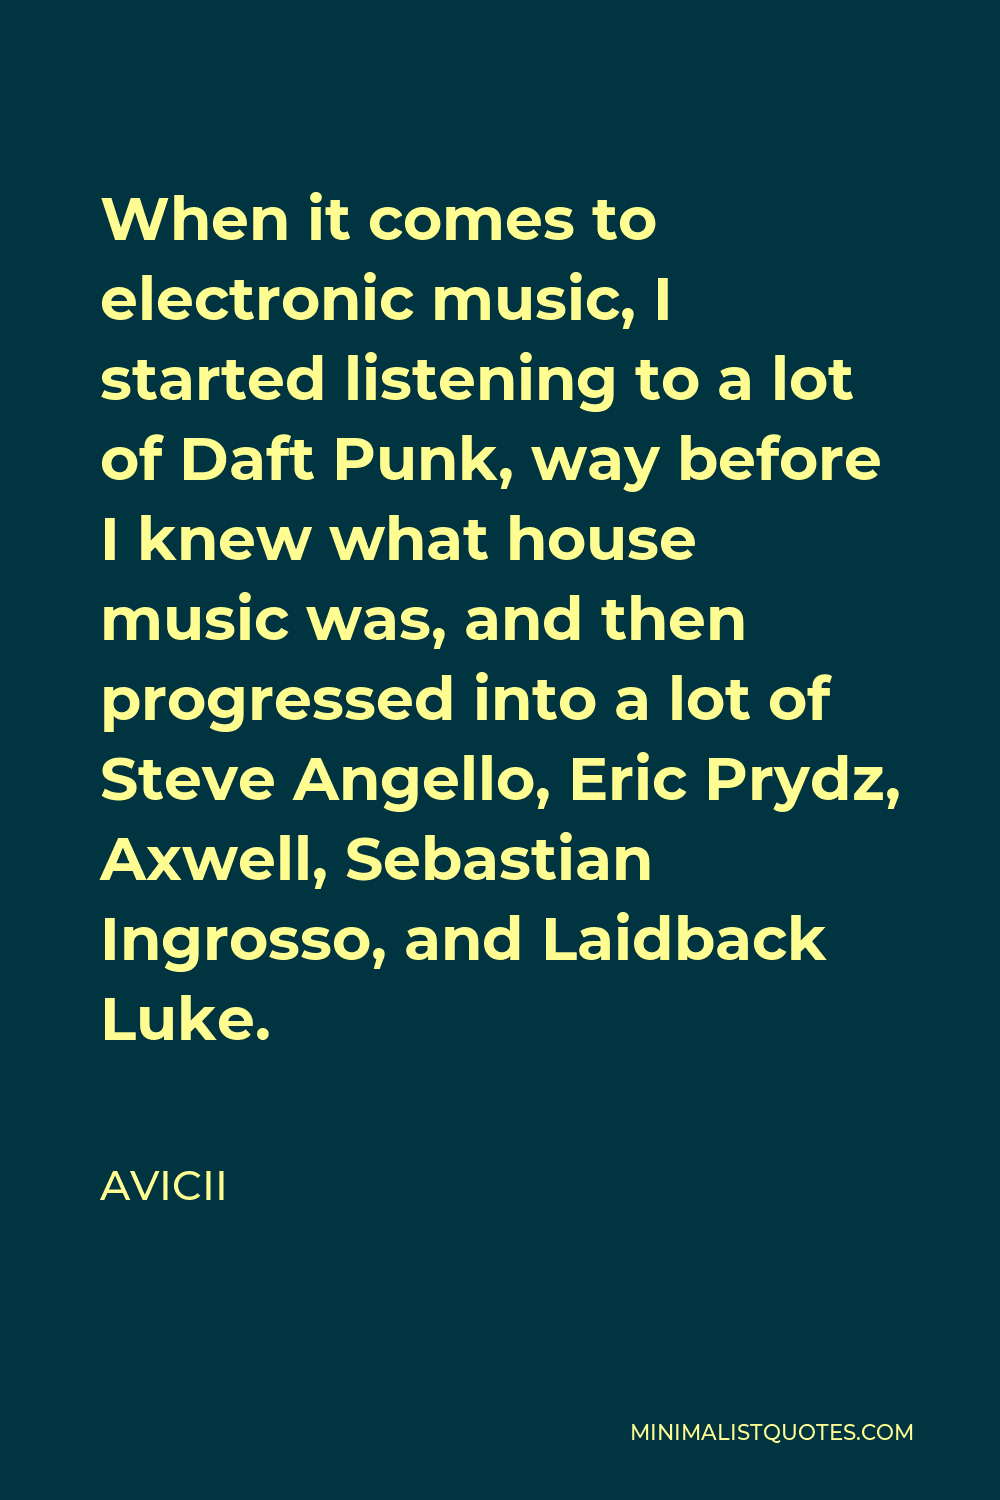 Avicii Quote - When it comes to electronic music, I started listening to a lot of Daft Punk, way before I knew what house music was, and then progressed into a lot of Steve Angello, Eric Prydz, Axwell, Sebastian Ingrosso, and Laidback Luke.